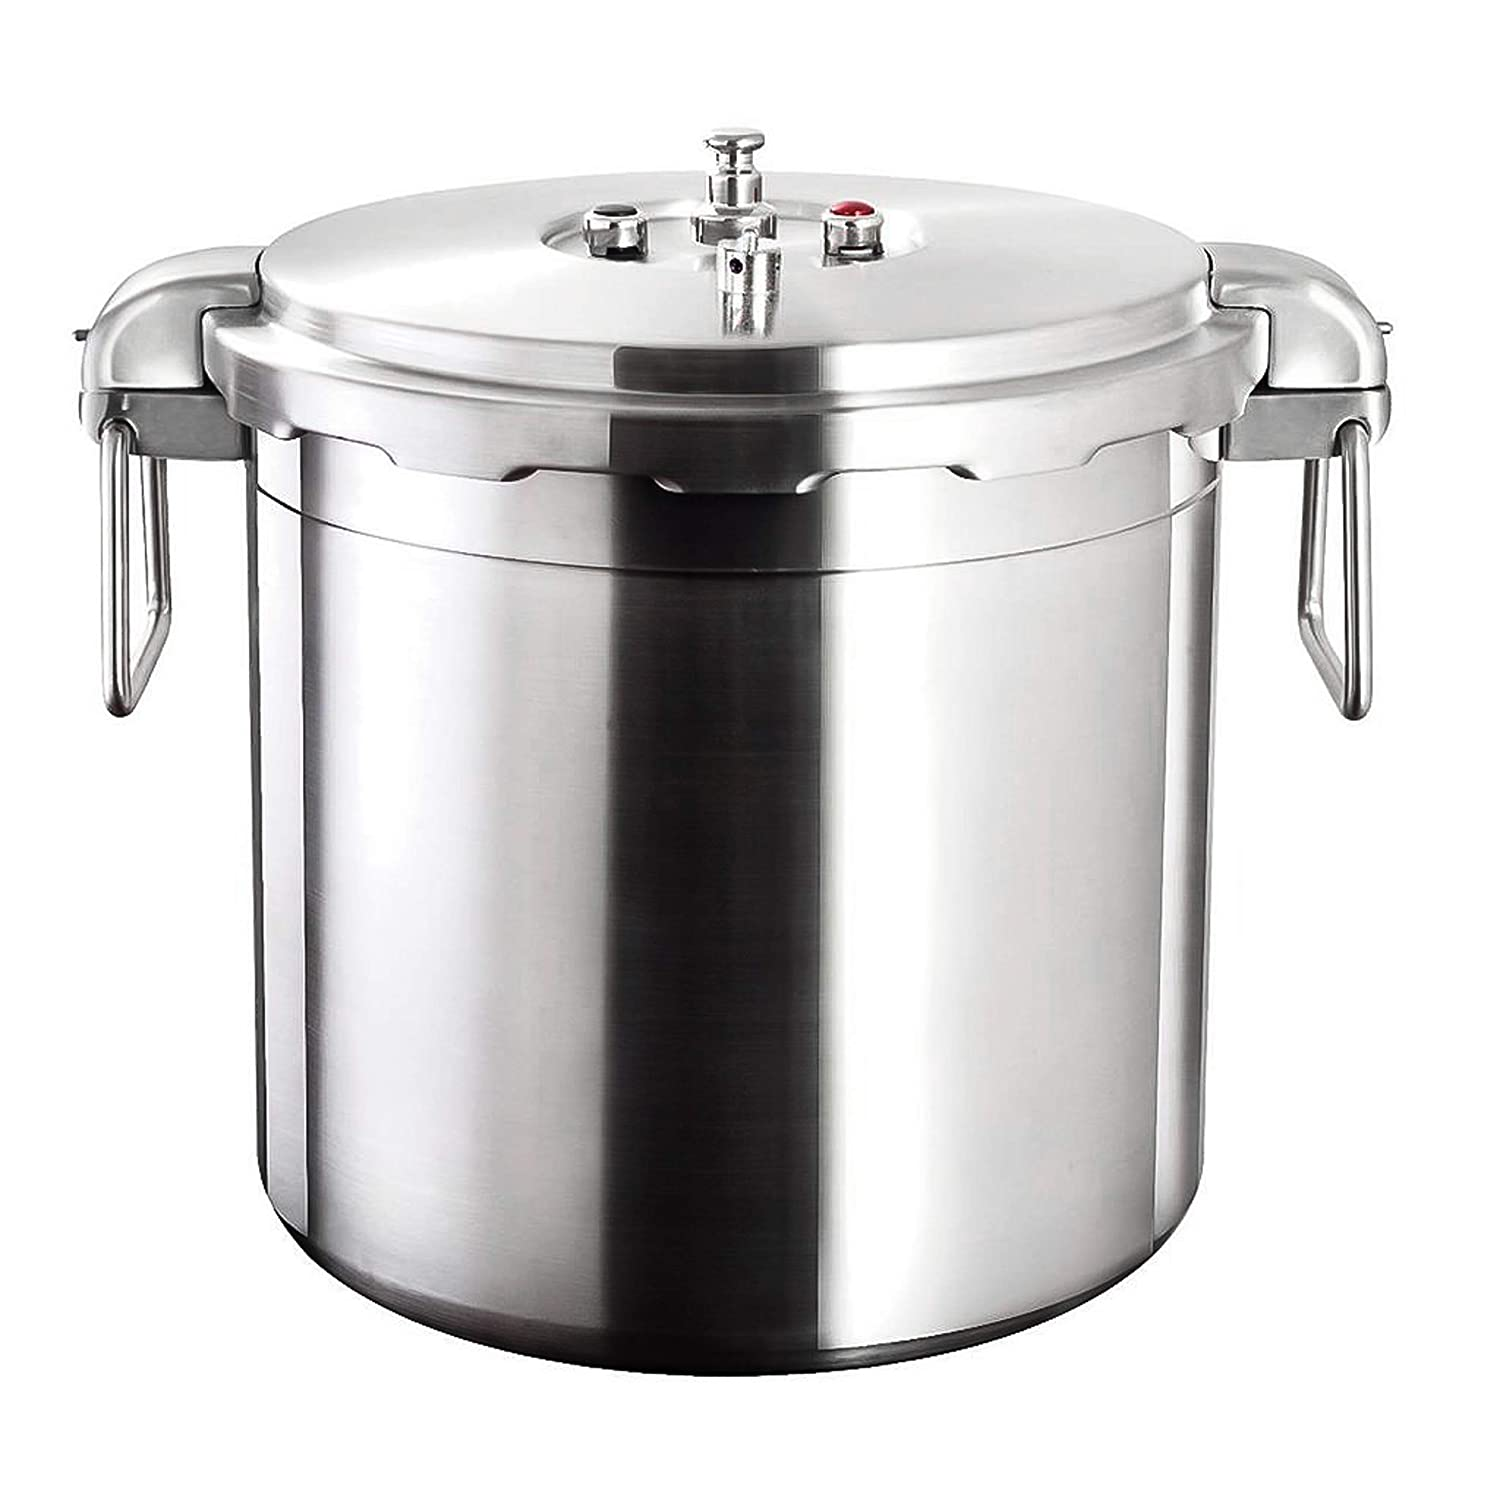 32 quart buffalo stainless steel pressure cooker review